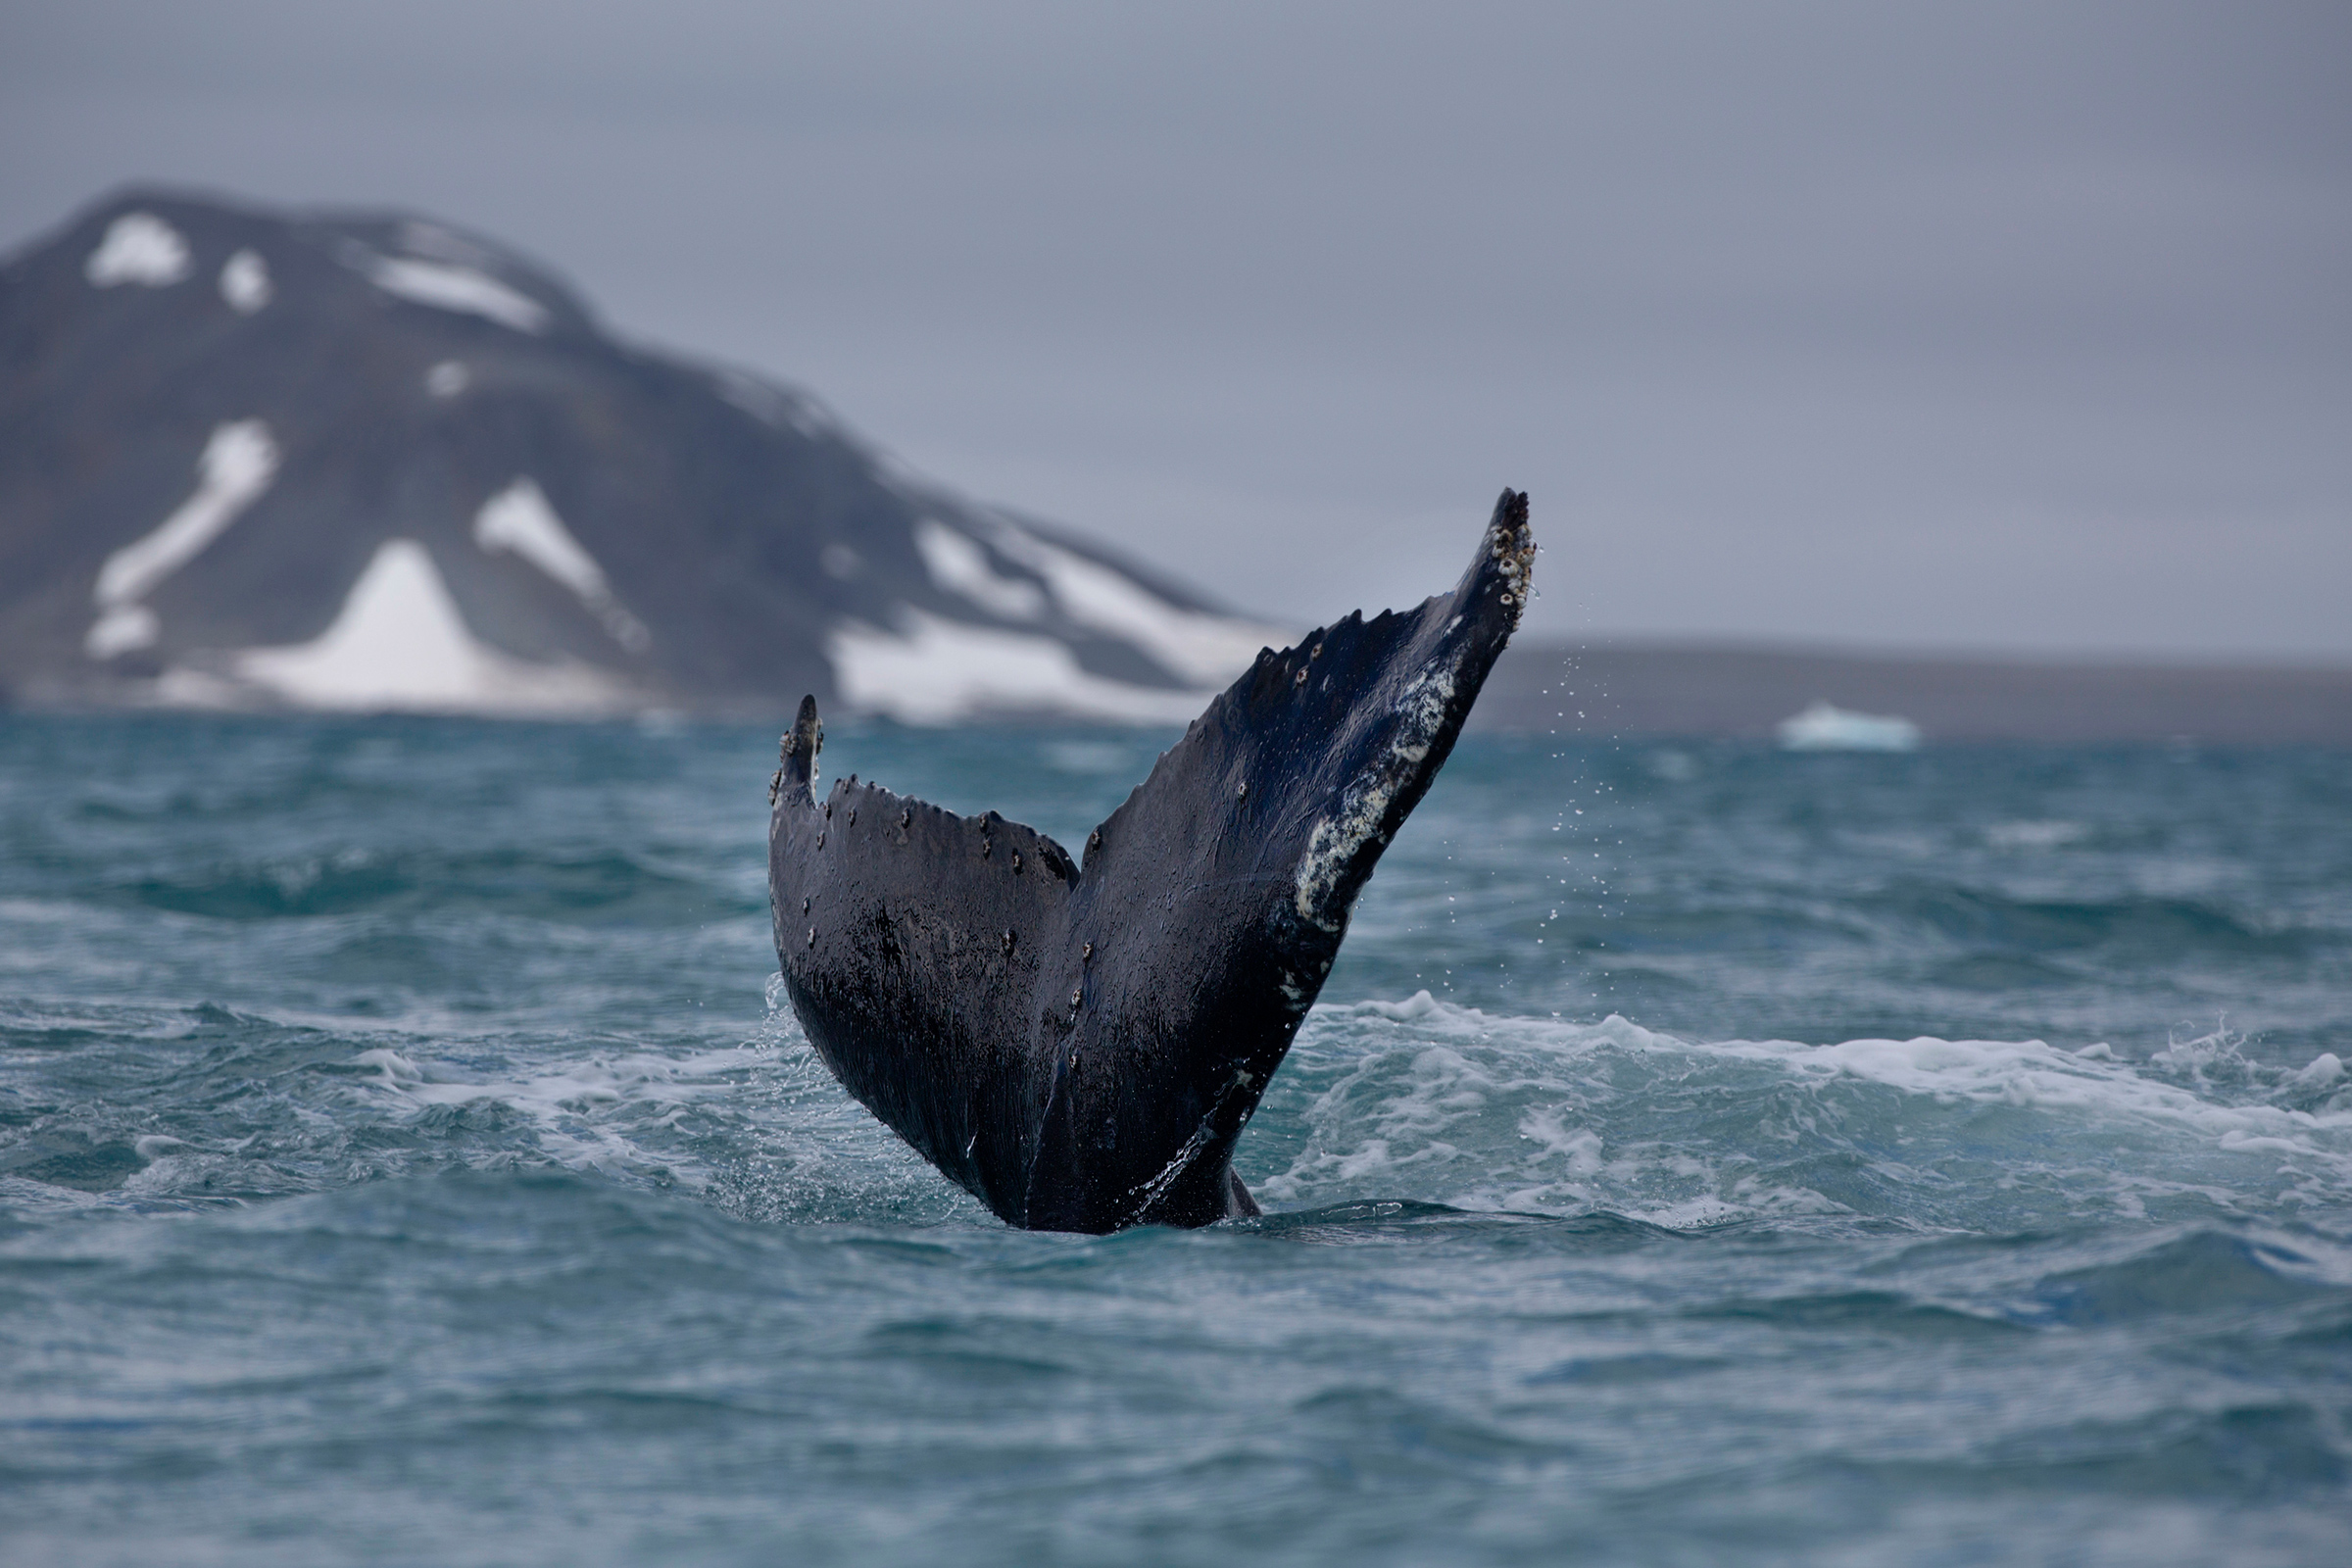 Humpback whales swim in the waters off Half Mood Island, Antarctica, Jan. 15, 2020.